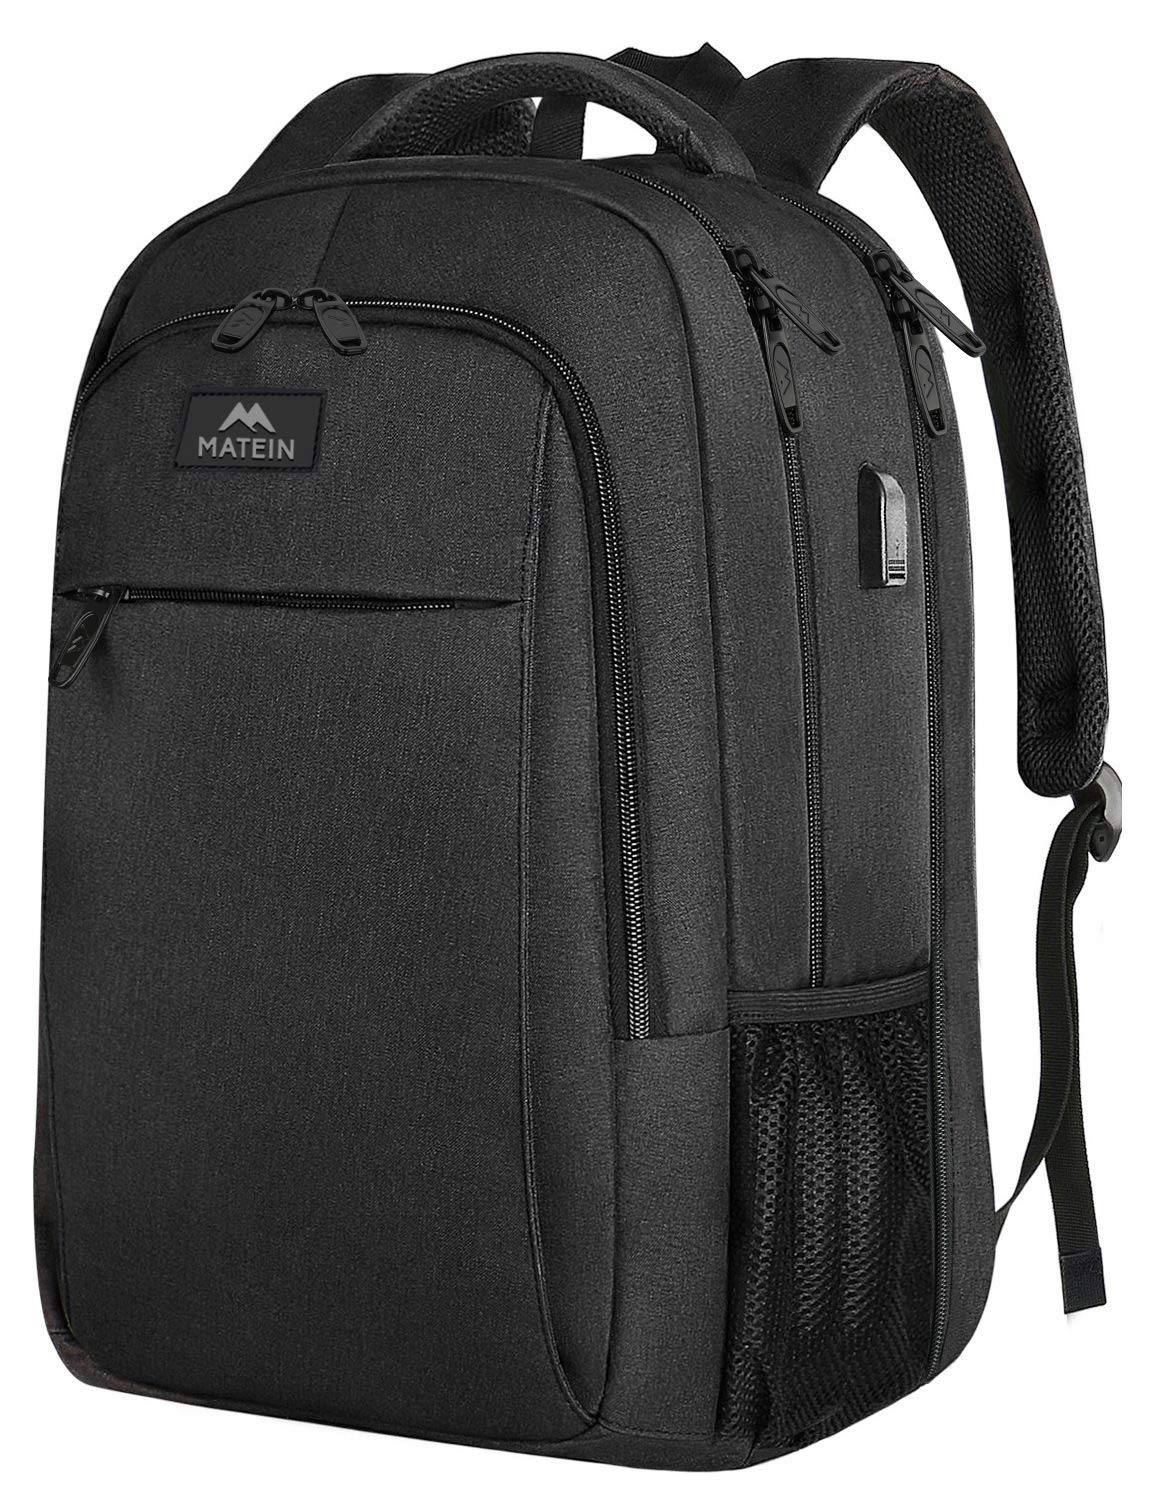 Extra Large Backpack,TSA Friendly College School Bookbags with Laptop Compartment Fit 17Inch Notebook for Boy & Girl,Anti Theft USB Travel Work Rucksack with Luggage Sleeve-Black, Matein by MATEIN